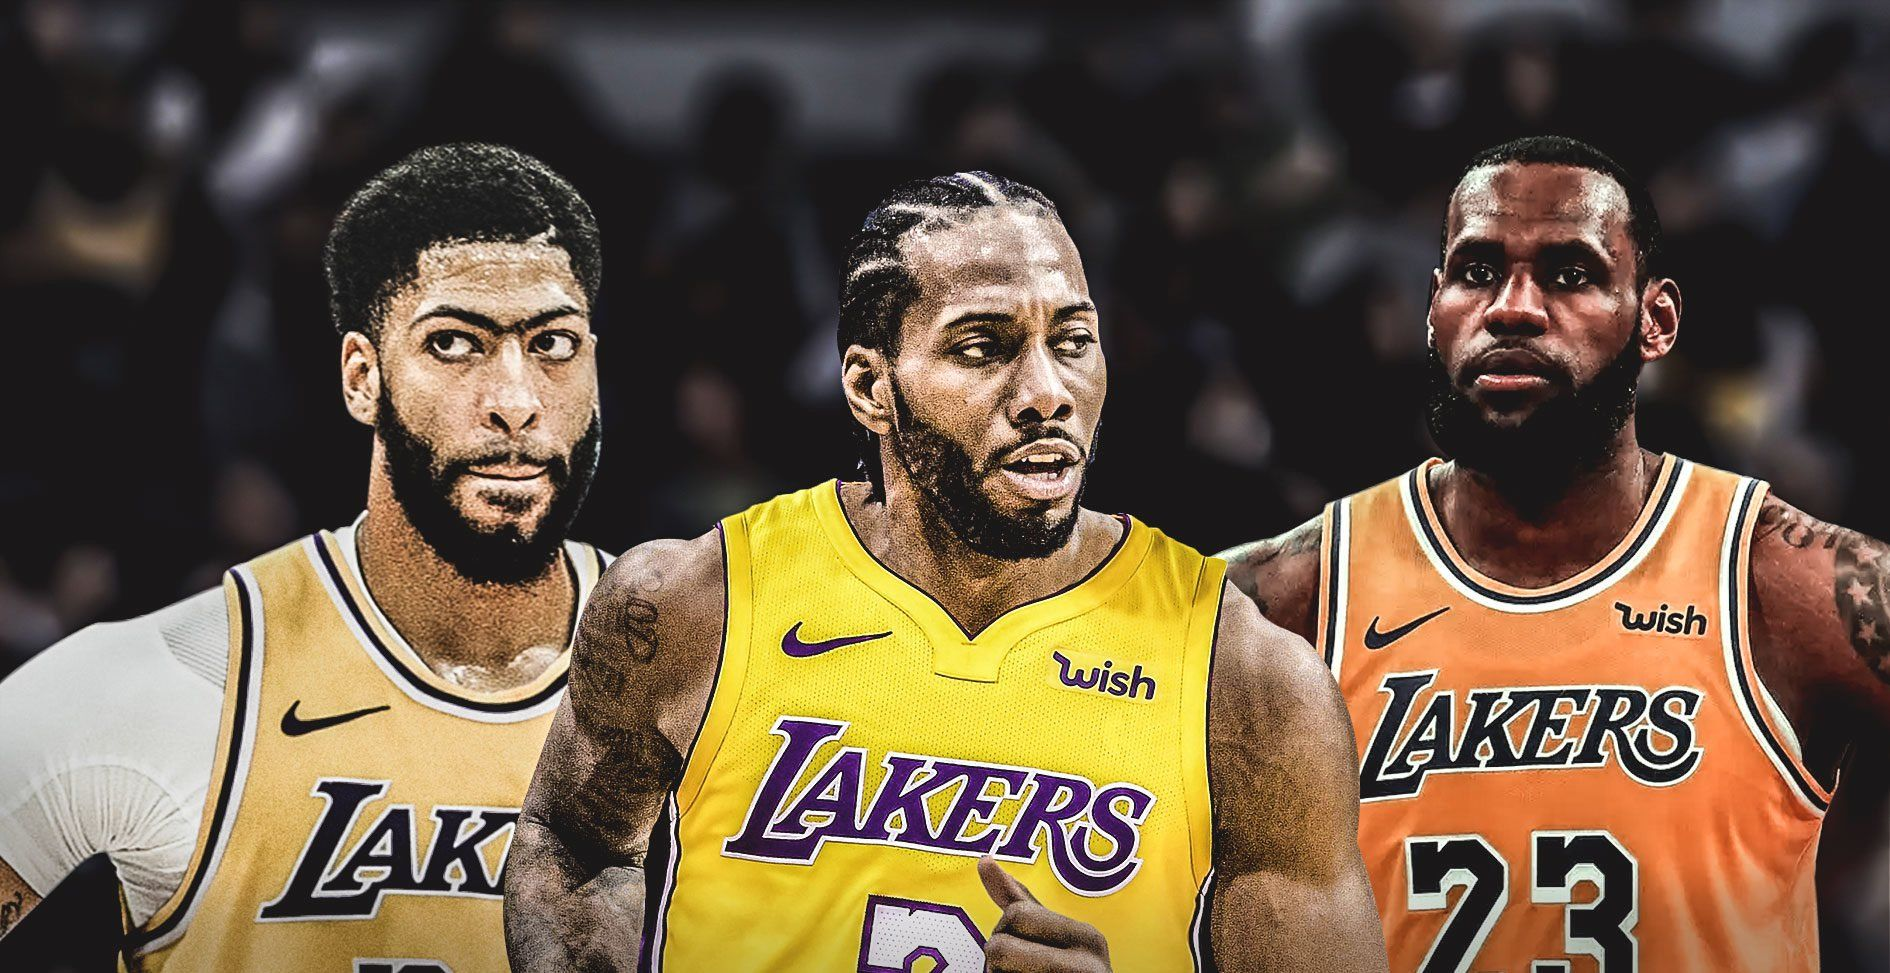 Nba Finals 2020 Odds And Prediction Lakers Win Is Certain After Sweep In Free Agency Lakers Win Nba Finals Lakers Team